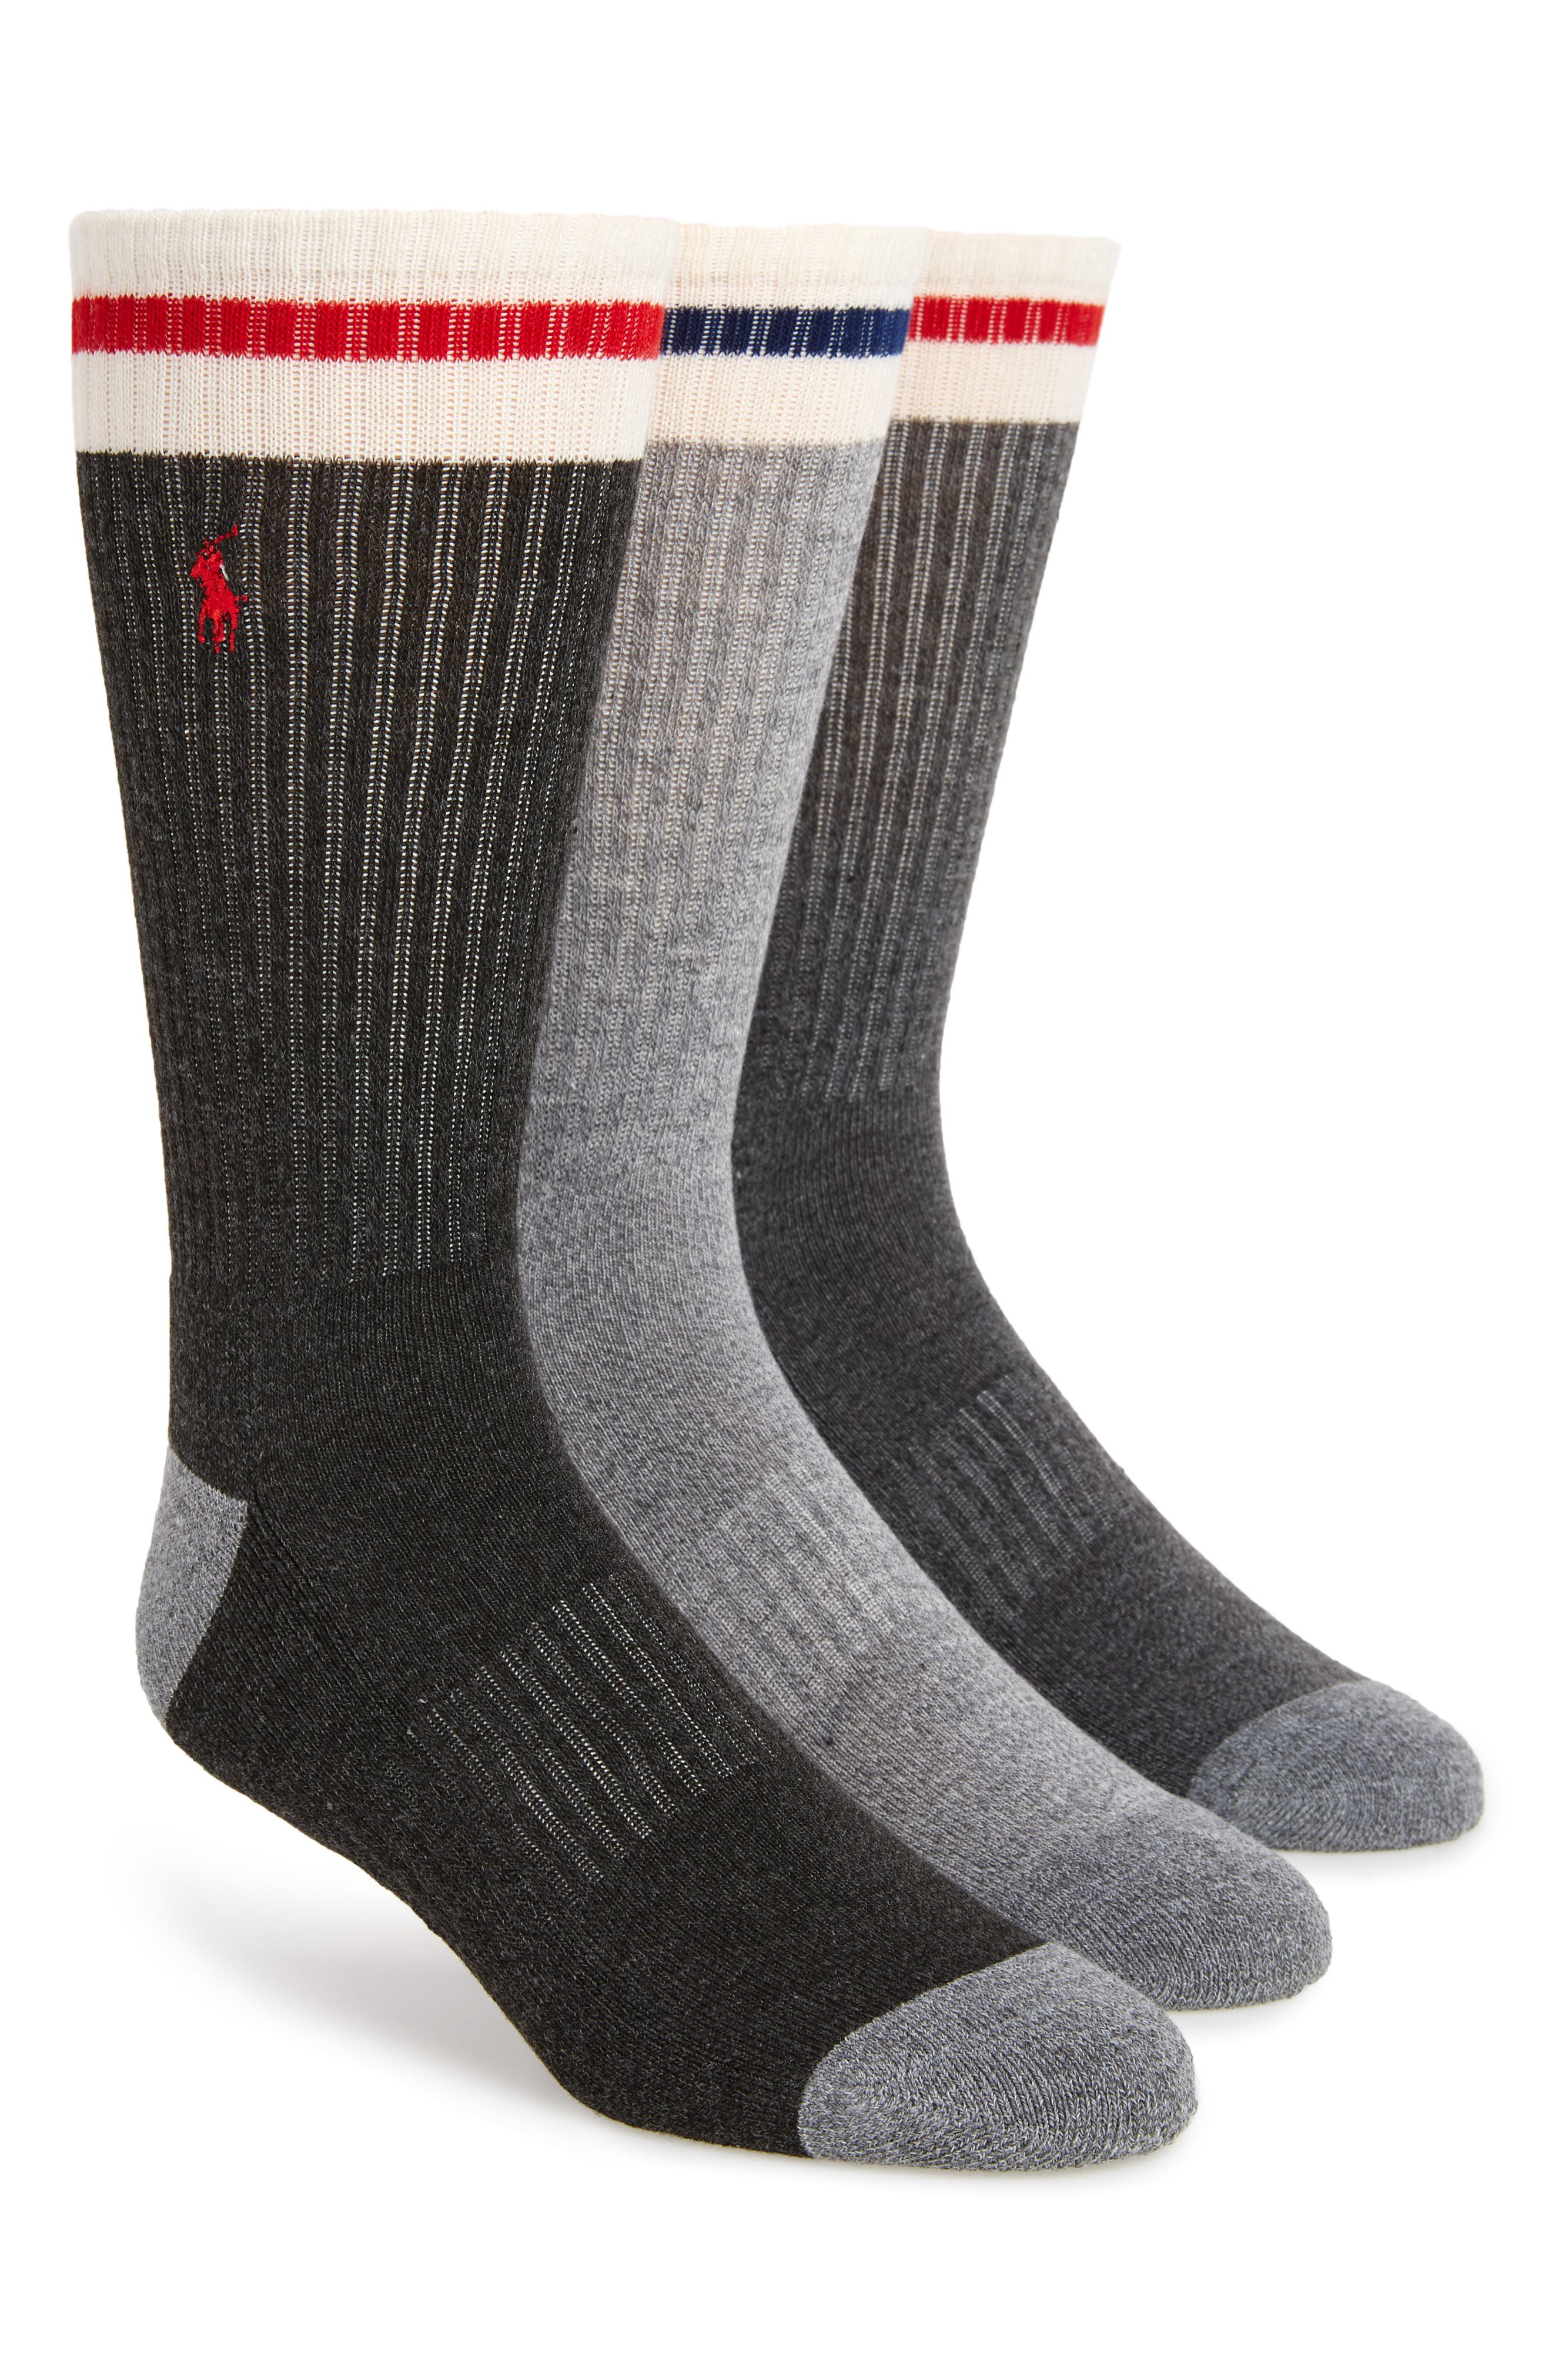 3-Pack Ivory Stripe Sport Crew Socks,                             Main thumbnail 1, color,                             Grey Heather/ Assorted